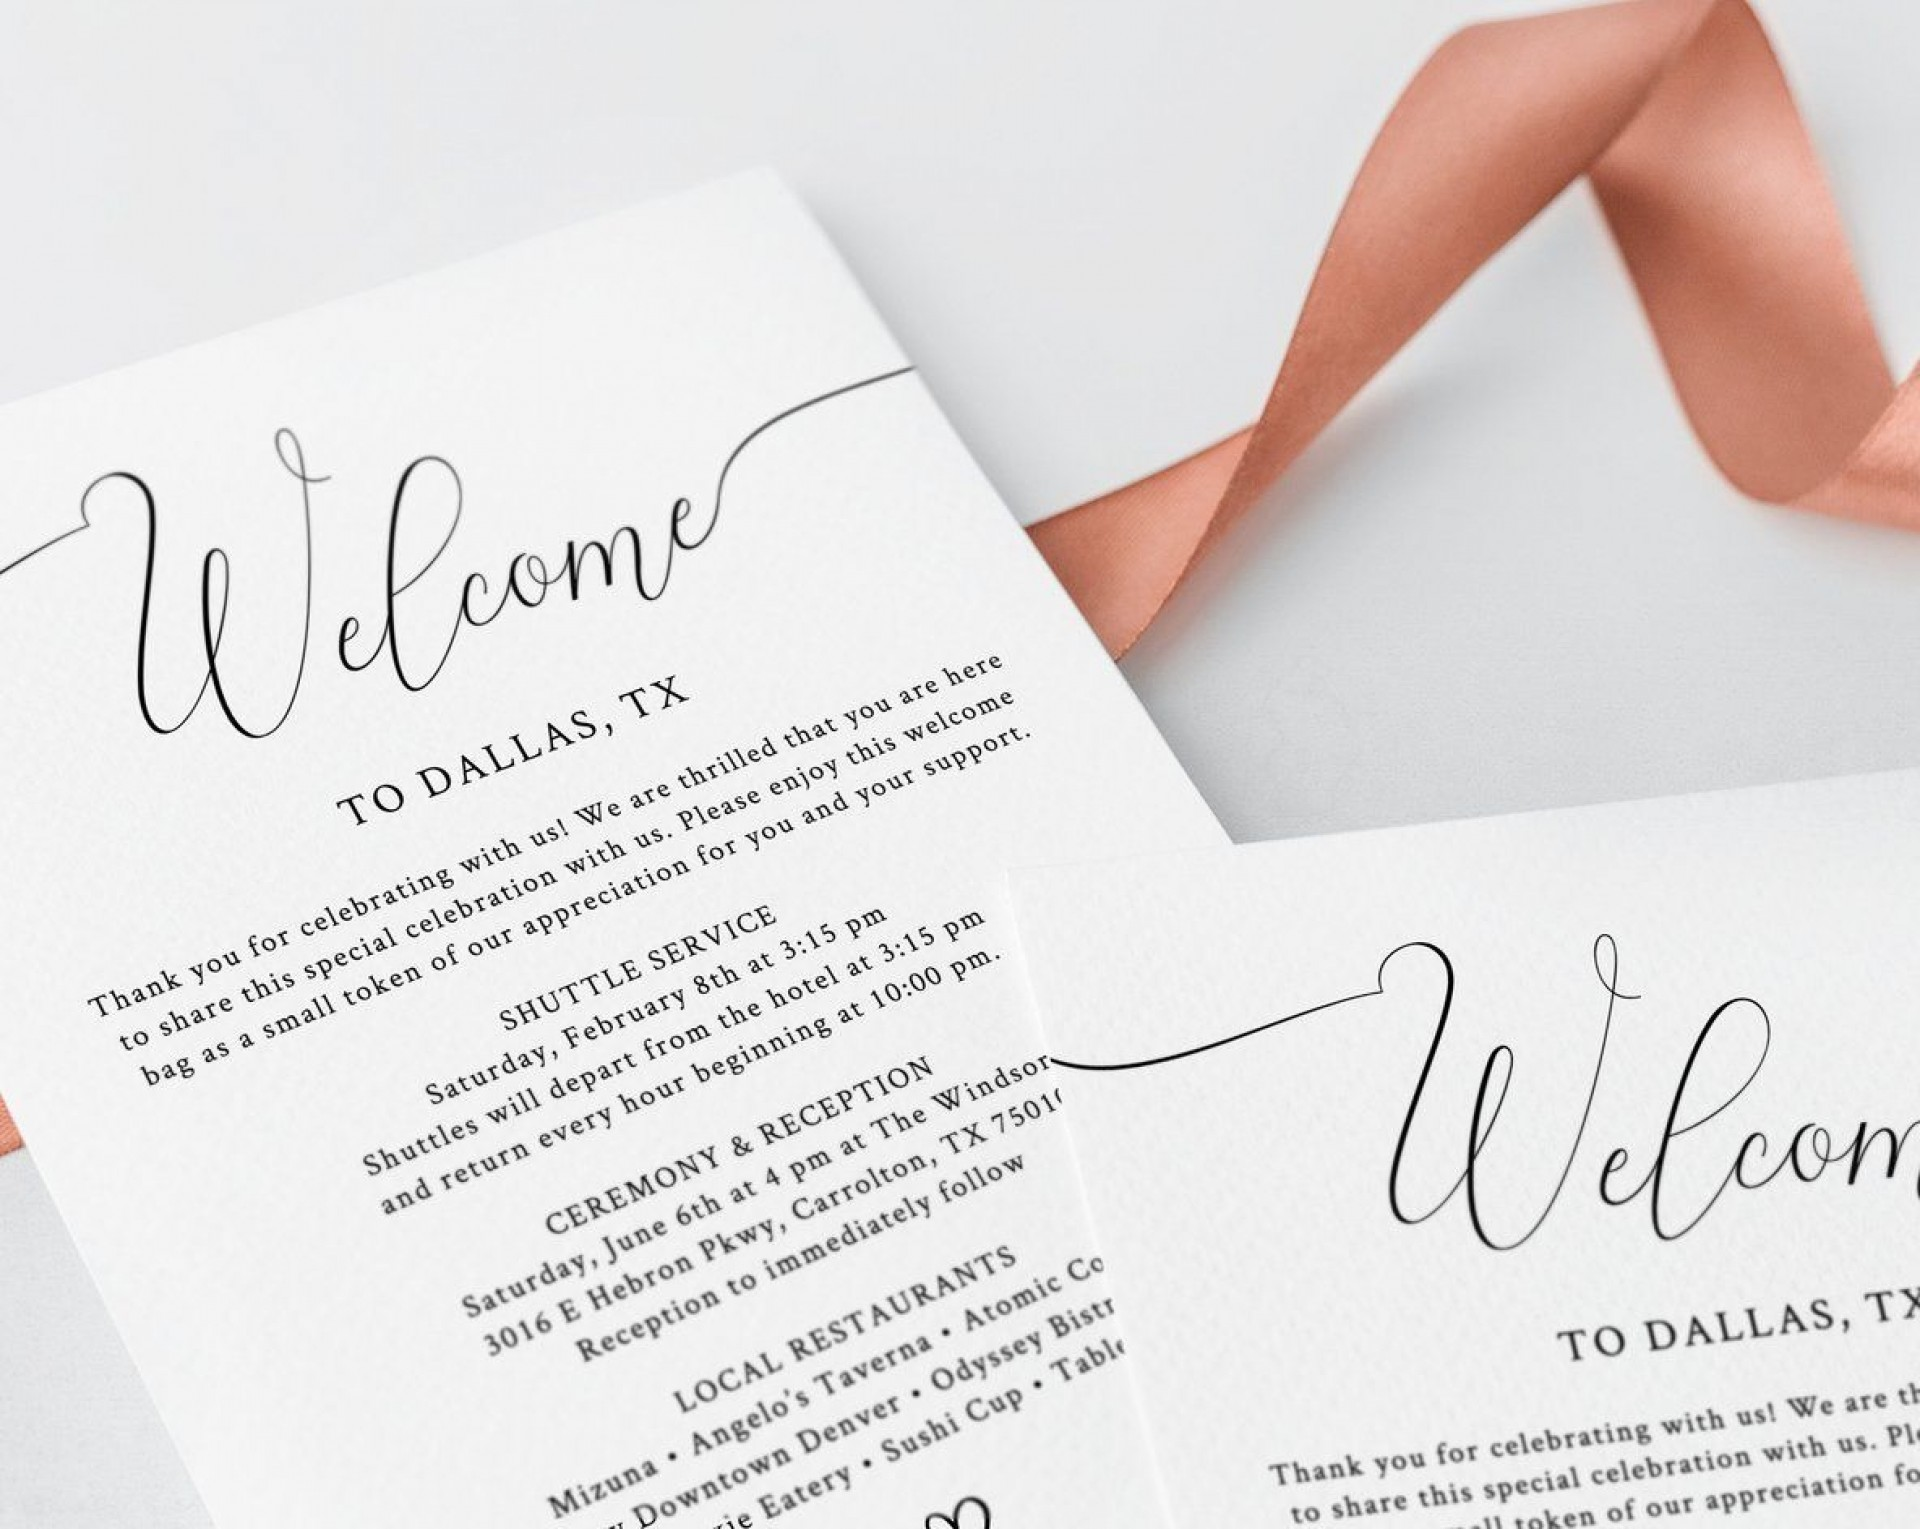 008 Frightening Wedding Welcome Letter Template Word Design 1920